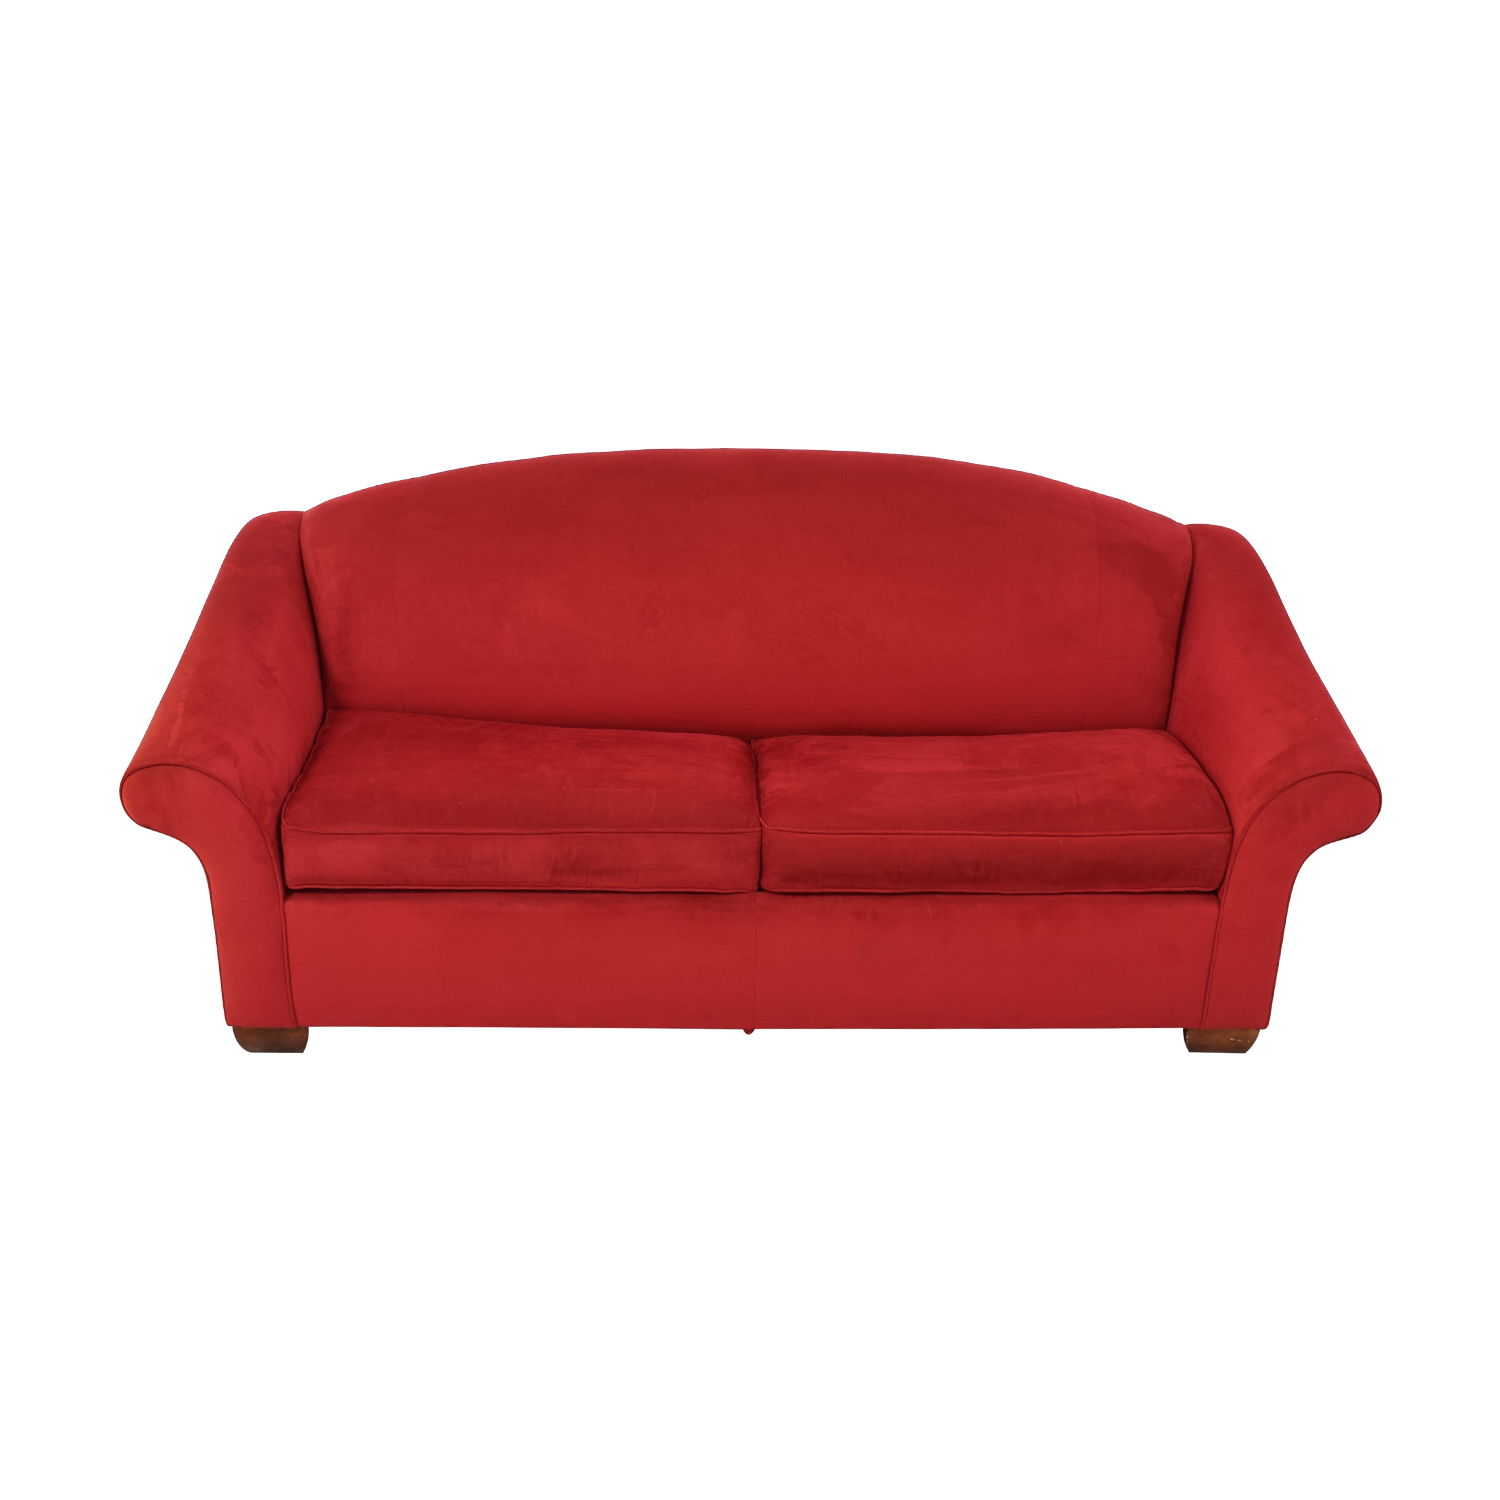 75% OFF - Kravet Kravet Red Sleeper Sofa / Sofas